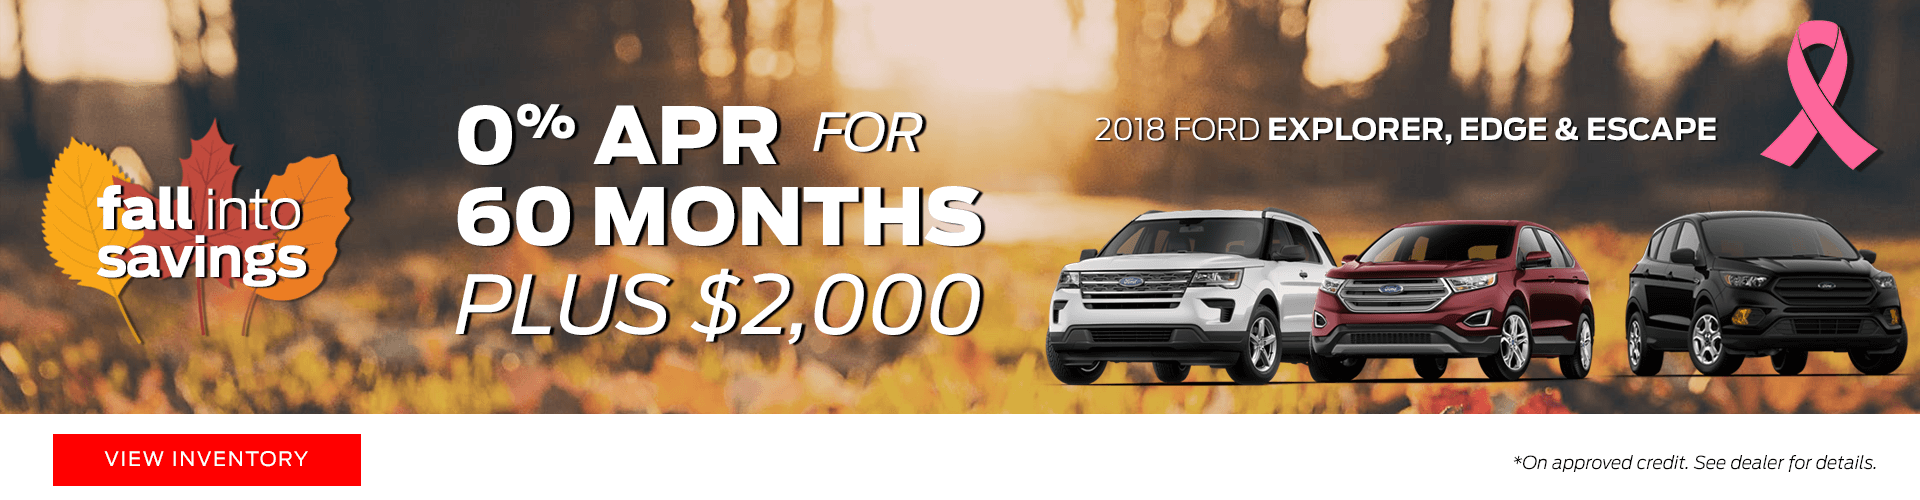 Special offer on 2018 Ford Explorer 2018 Ford Explorer, Edge & Escape Special Offer